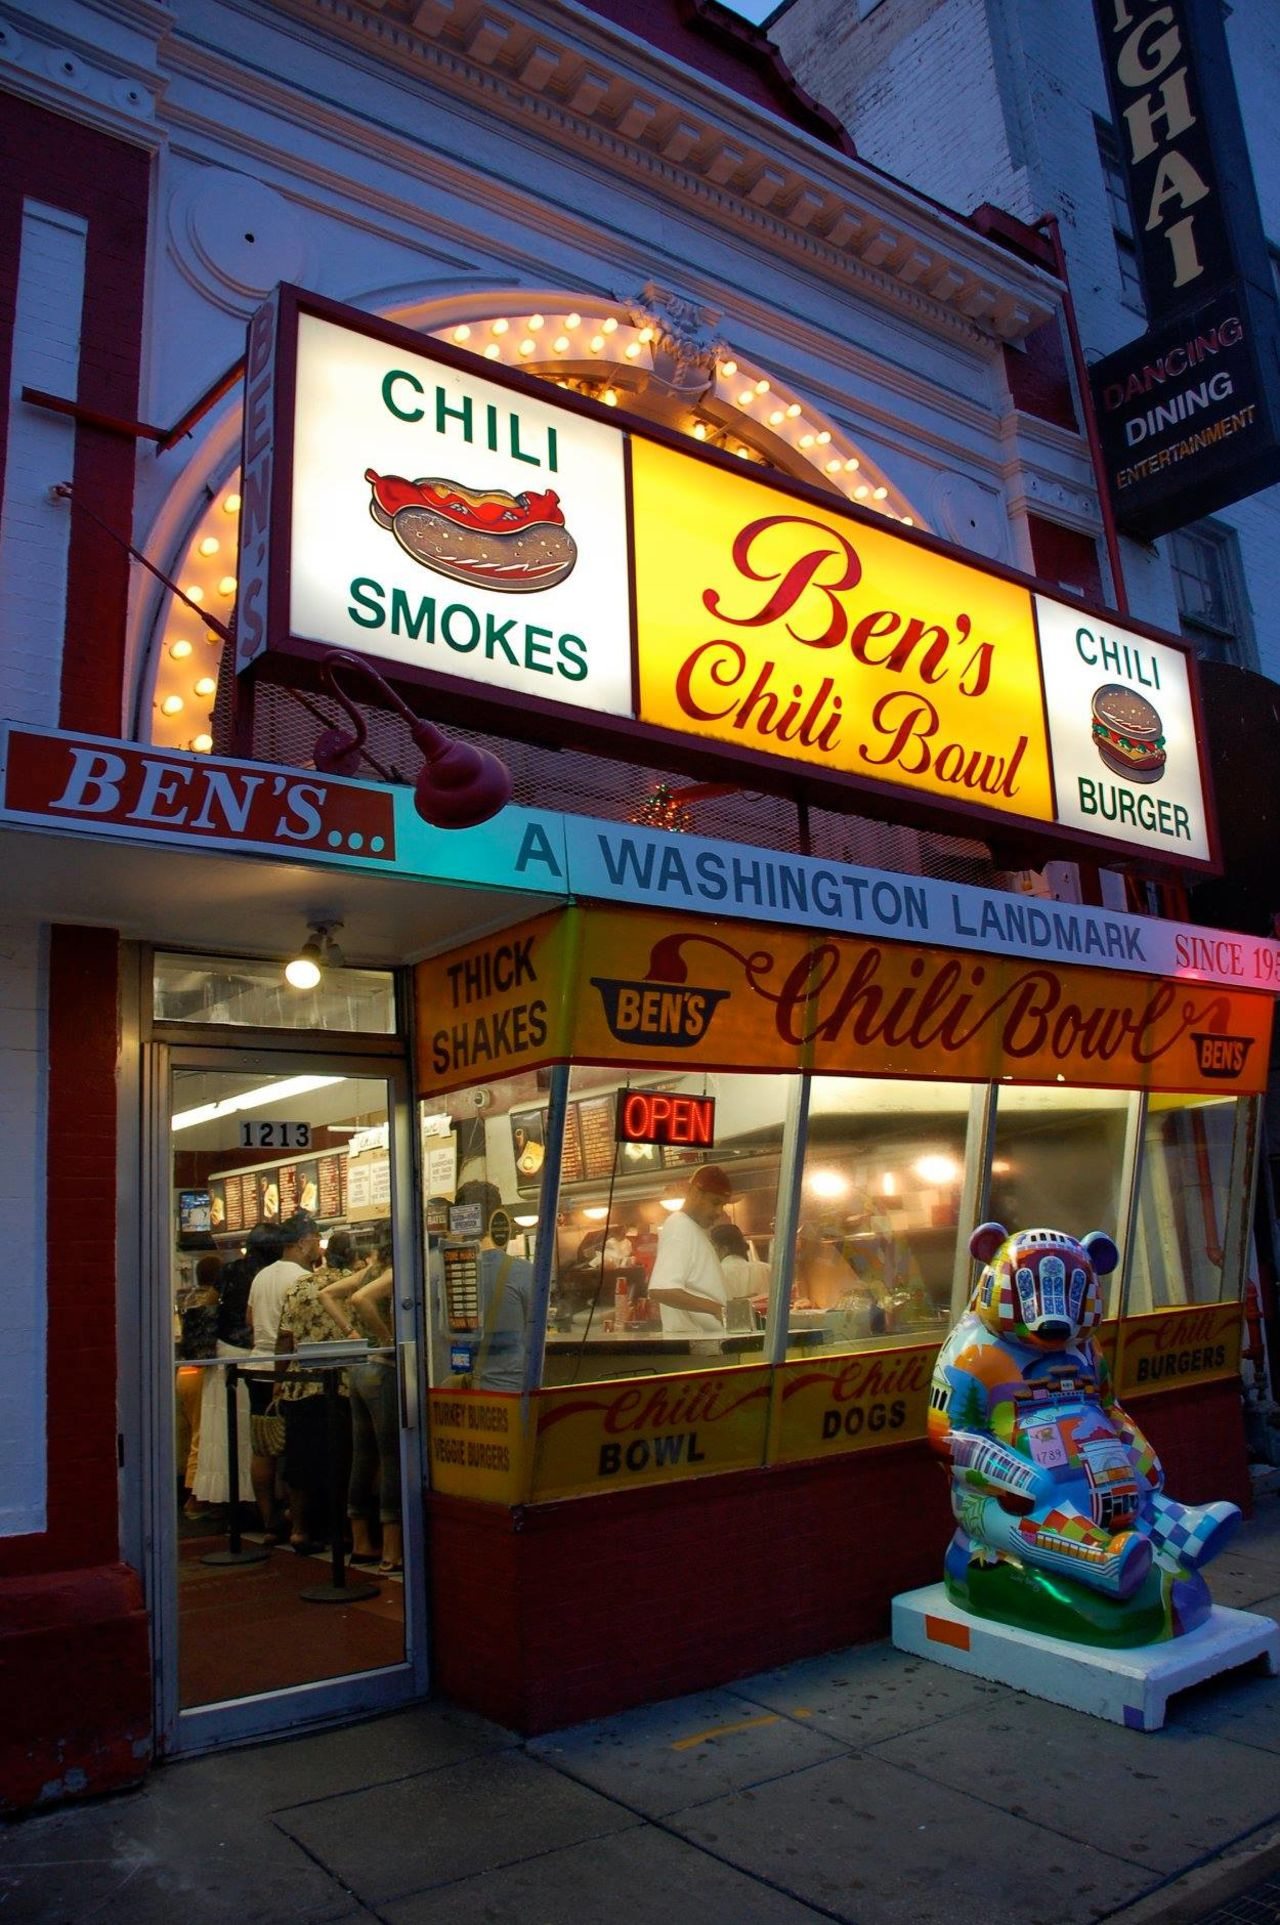 A photo of Ben's Chili Bowl, The Original